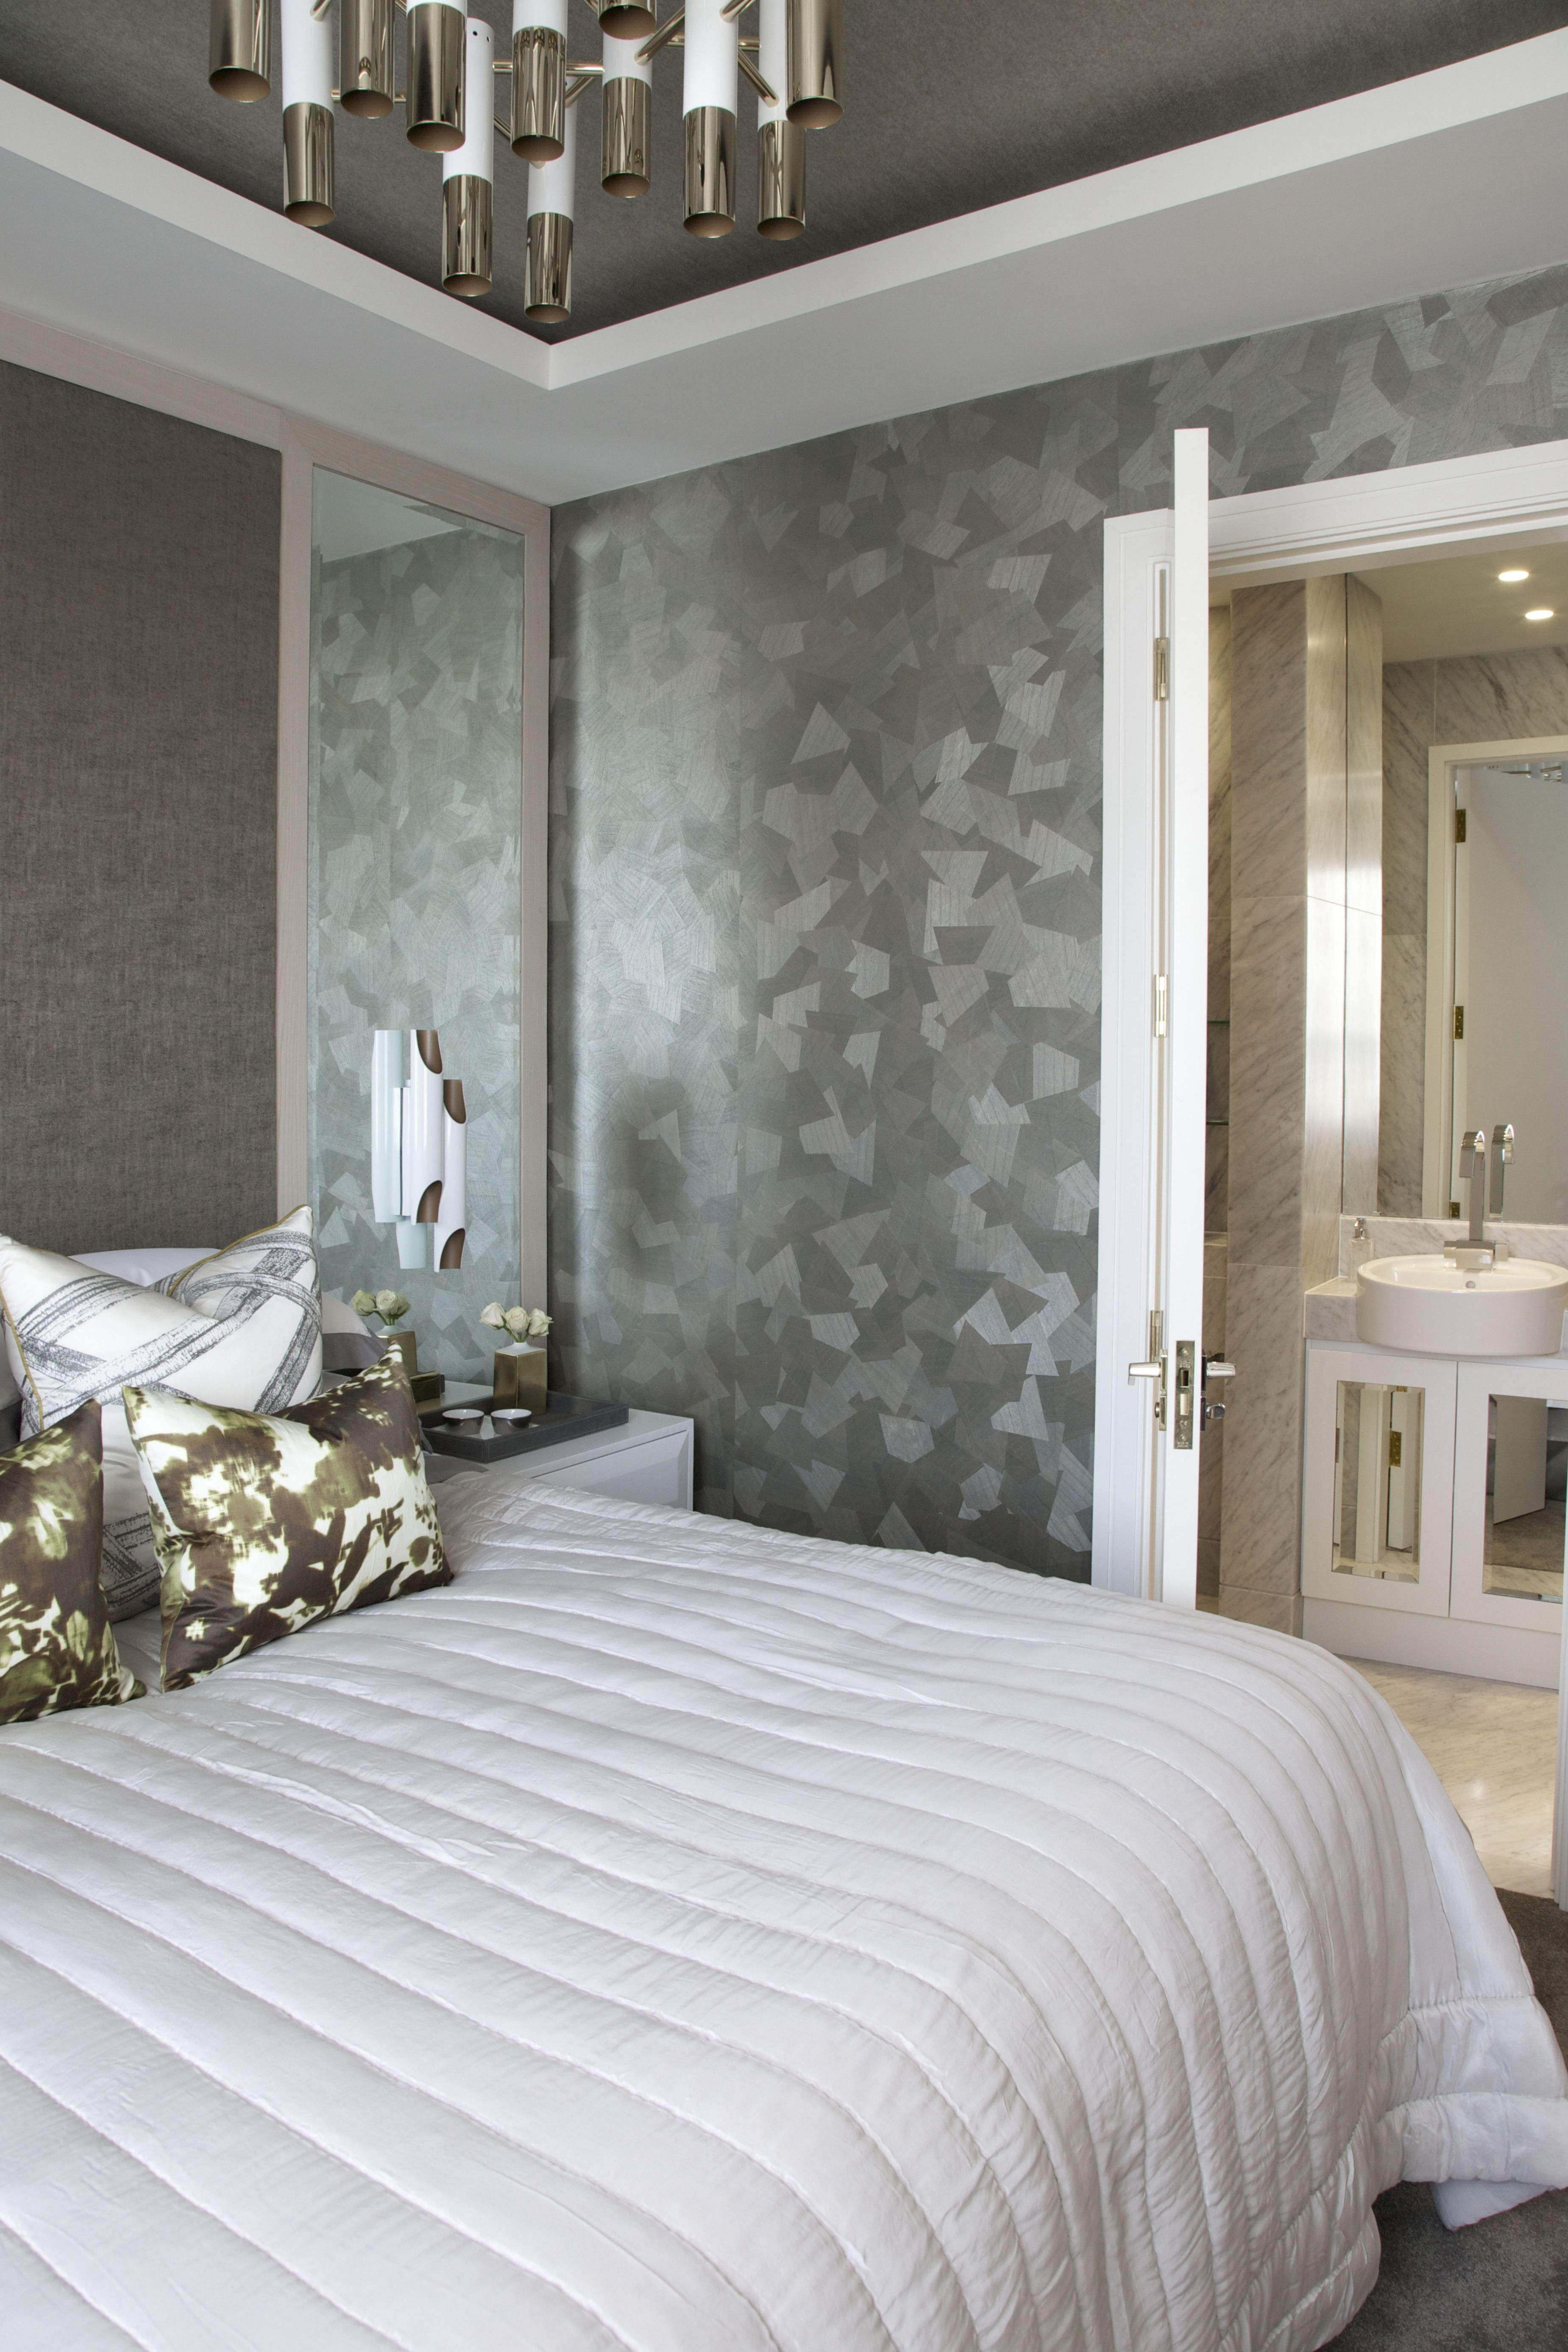 A London Luxury 4 Bed Apartment featuring our Origami ...